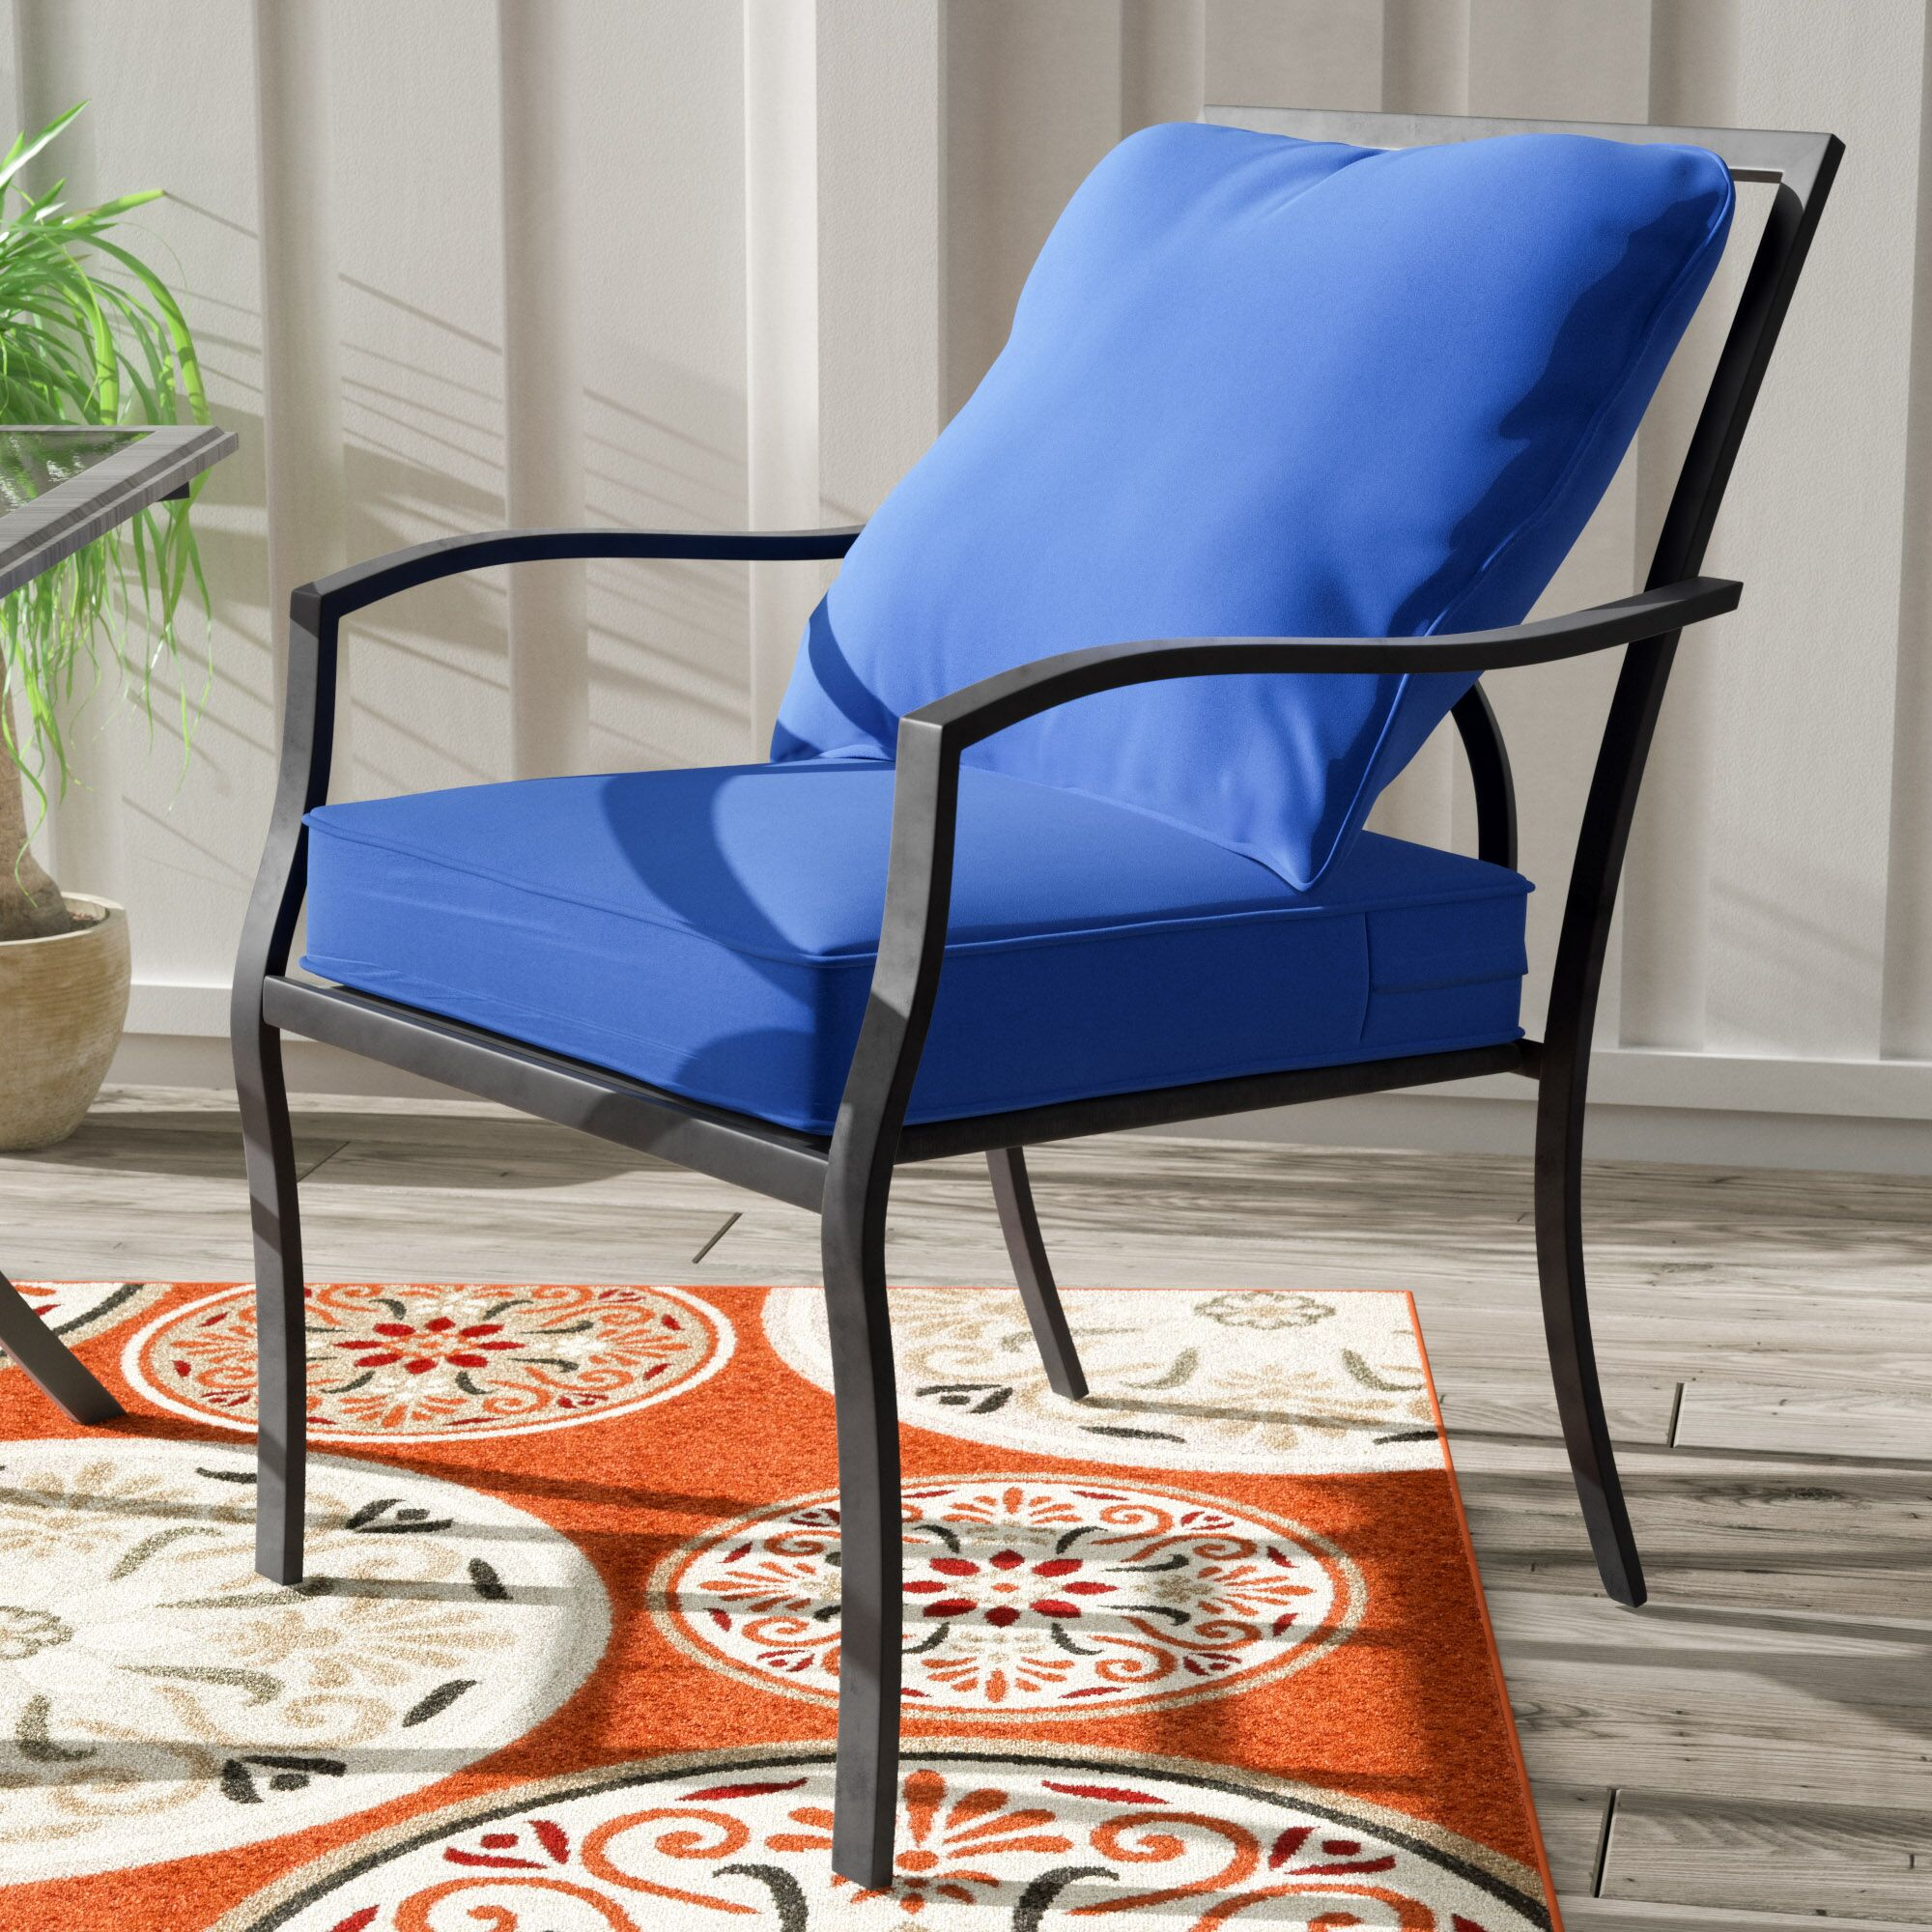 Furniture Cushions Sarver Indoor Outdoor Lounge Chair Cushion March 2019